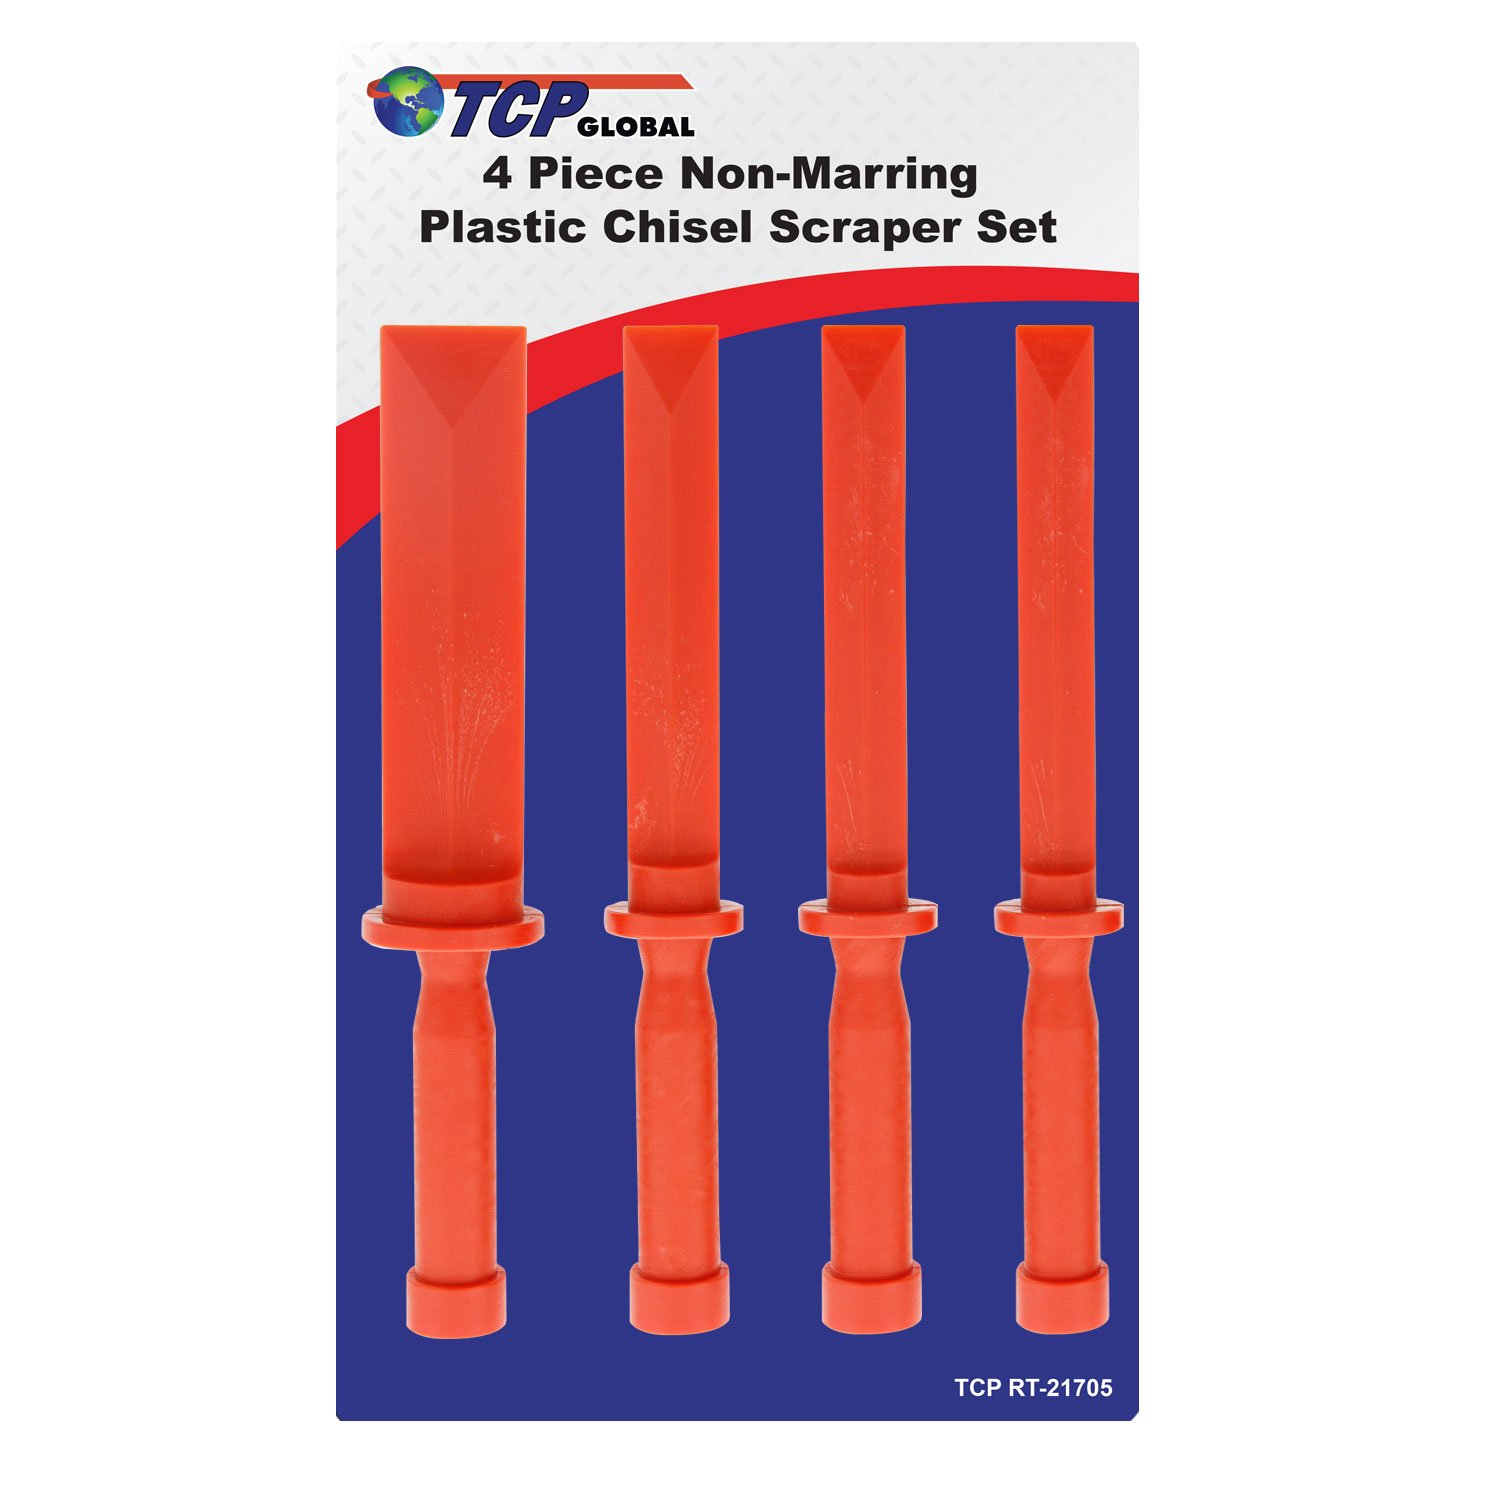 TCP Global 4 Piece Non-Marring Plastic Chisel Scraper Set - 3/4, 7/8, 1'', 1-1/2 Wide, Length 11''